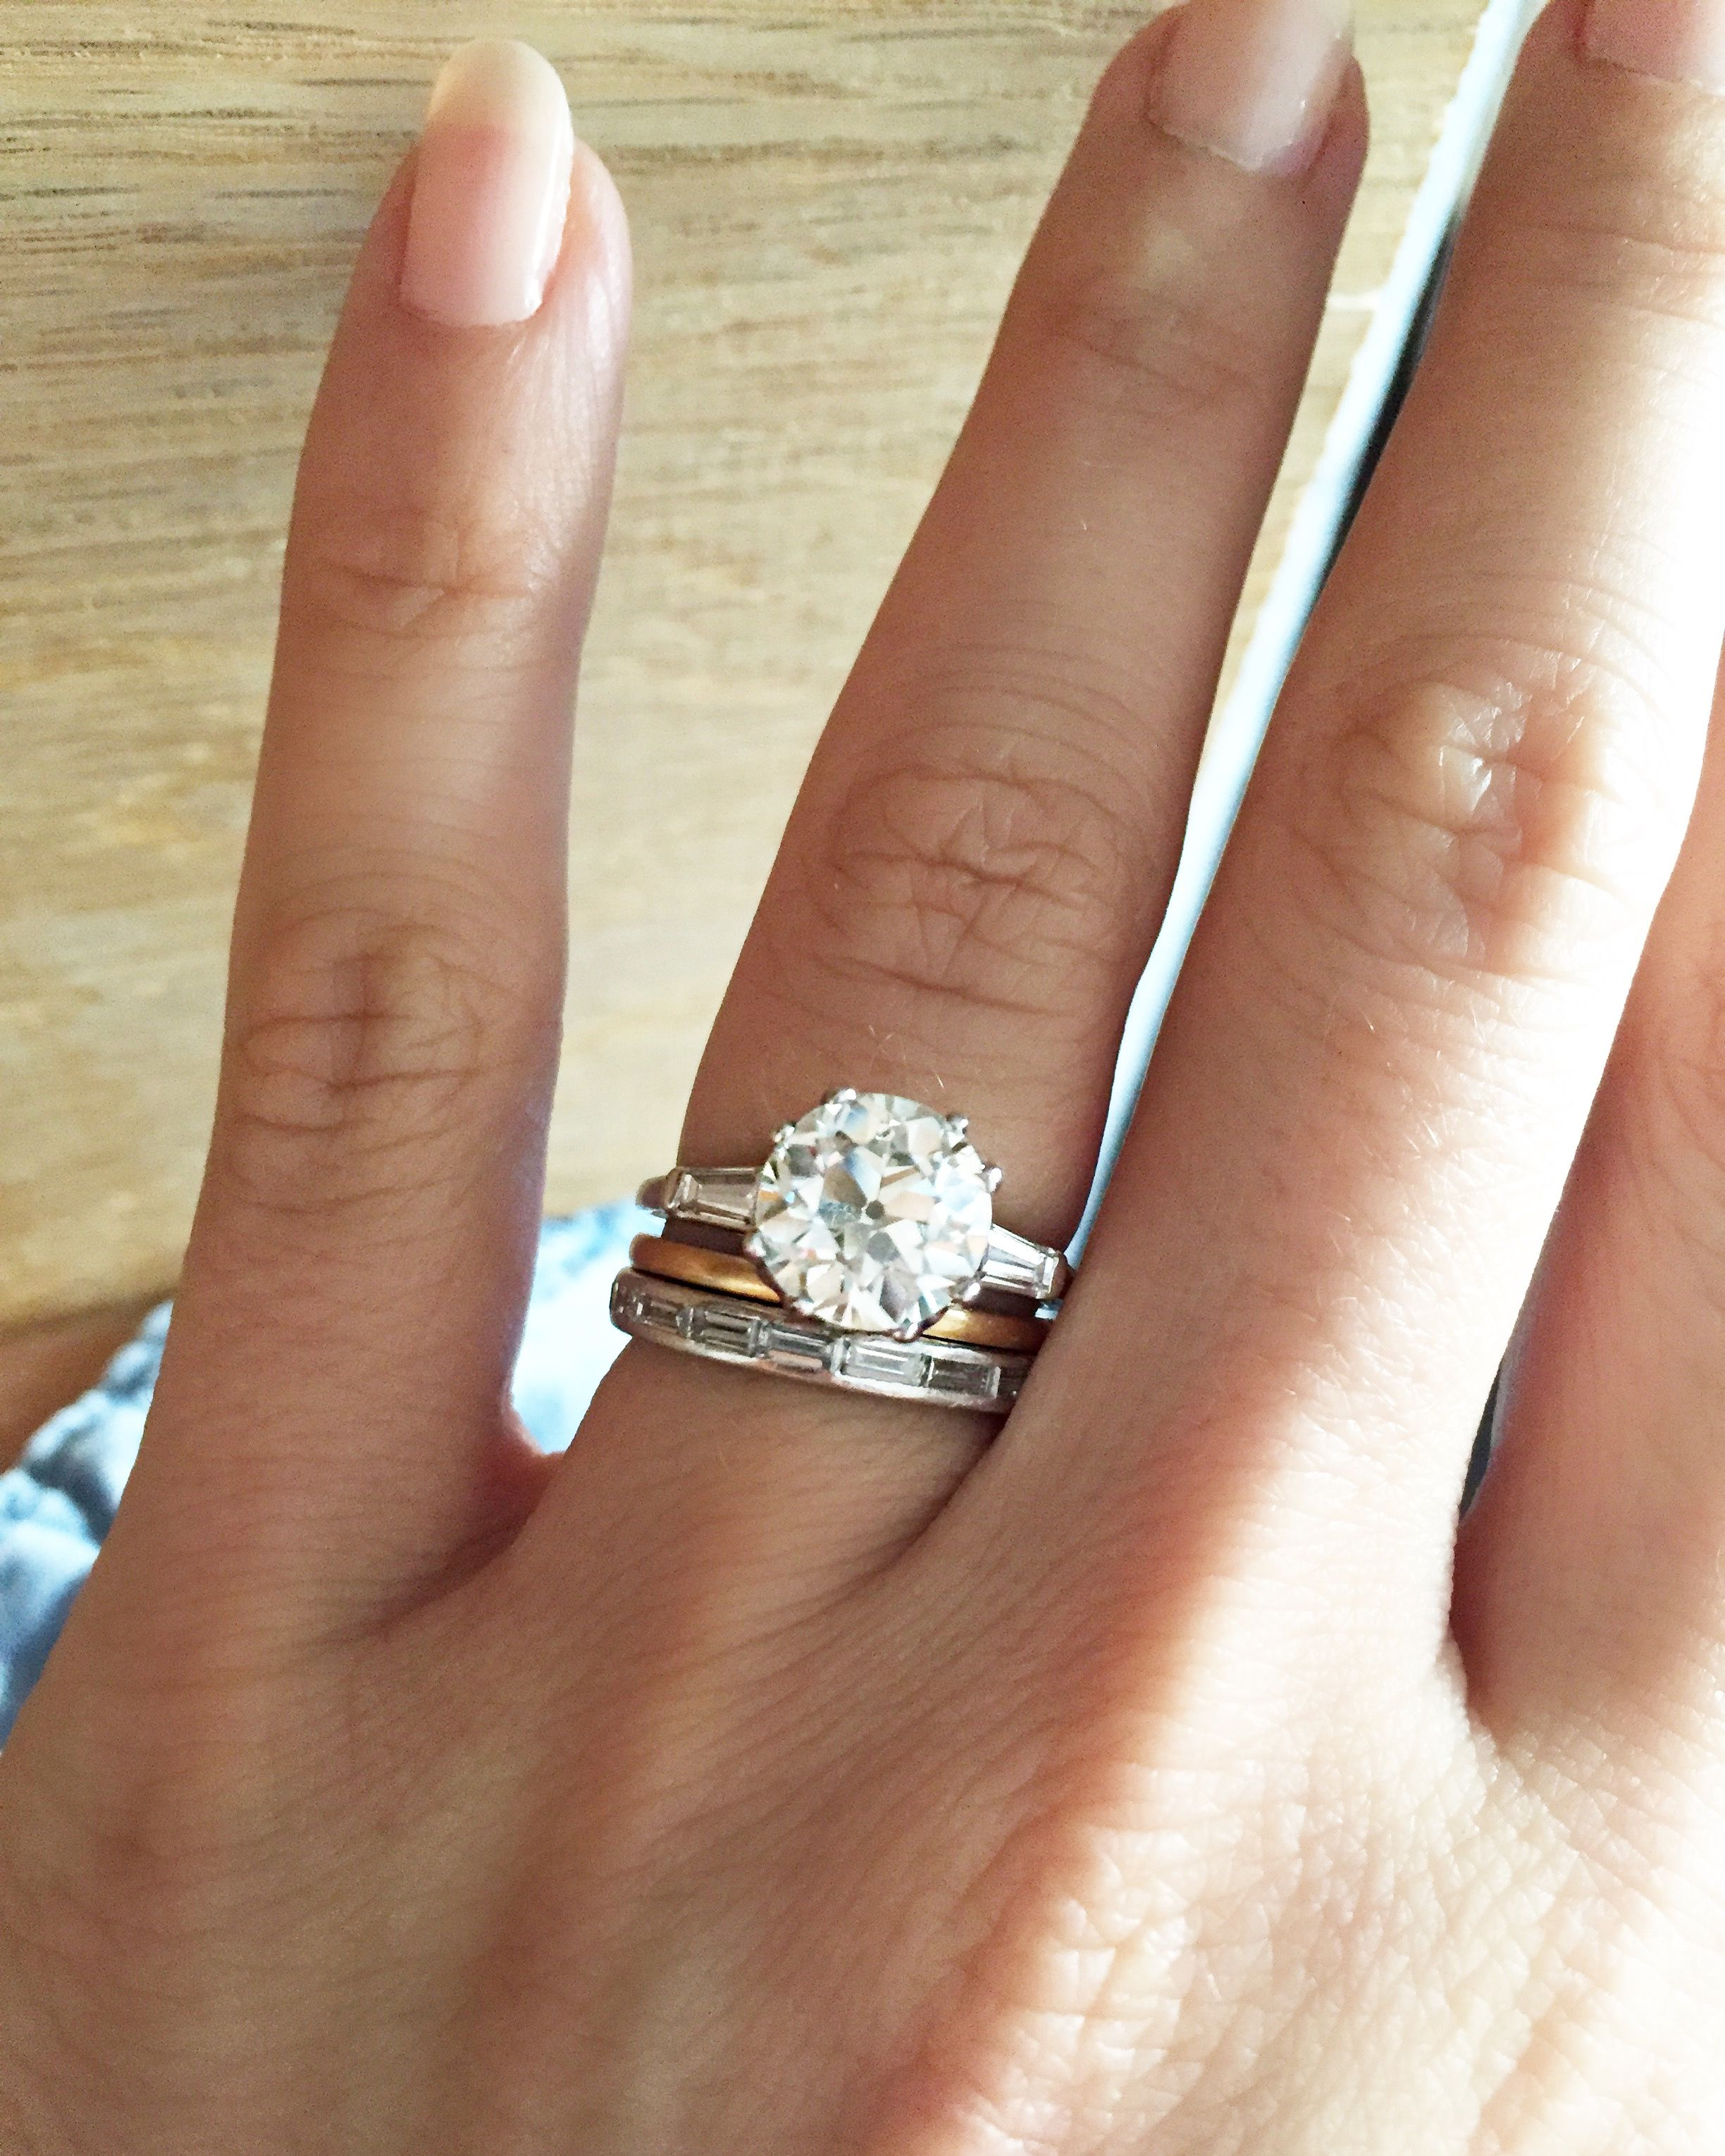 2 60 carat Old European Cut Diamond Engagement Ring with tapered